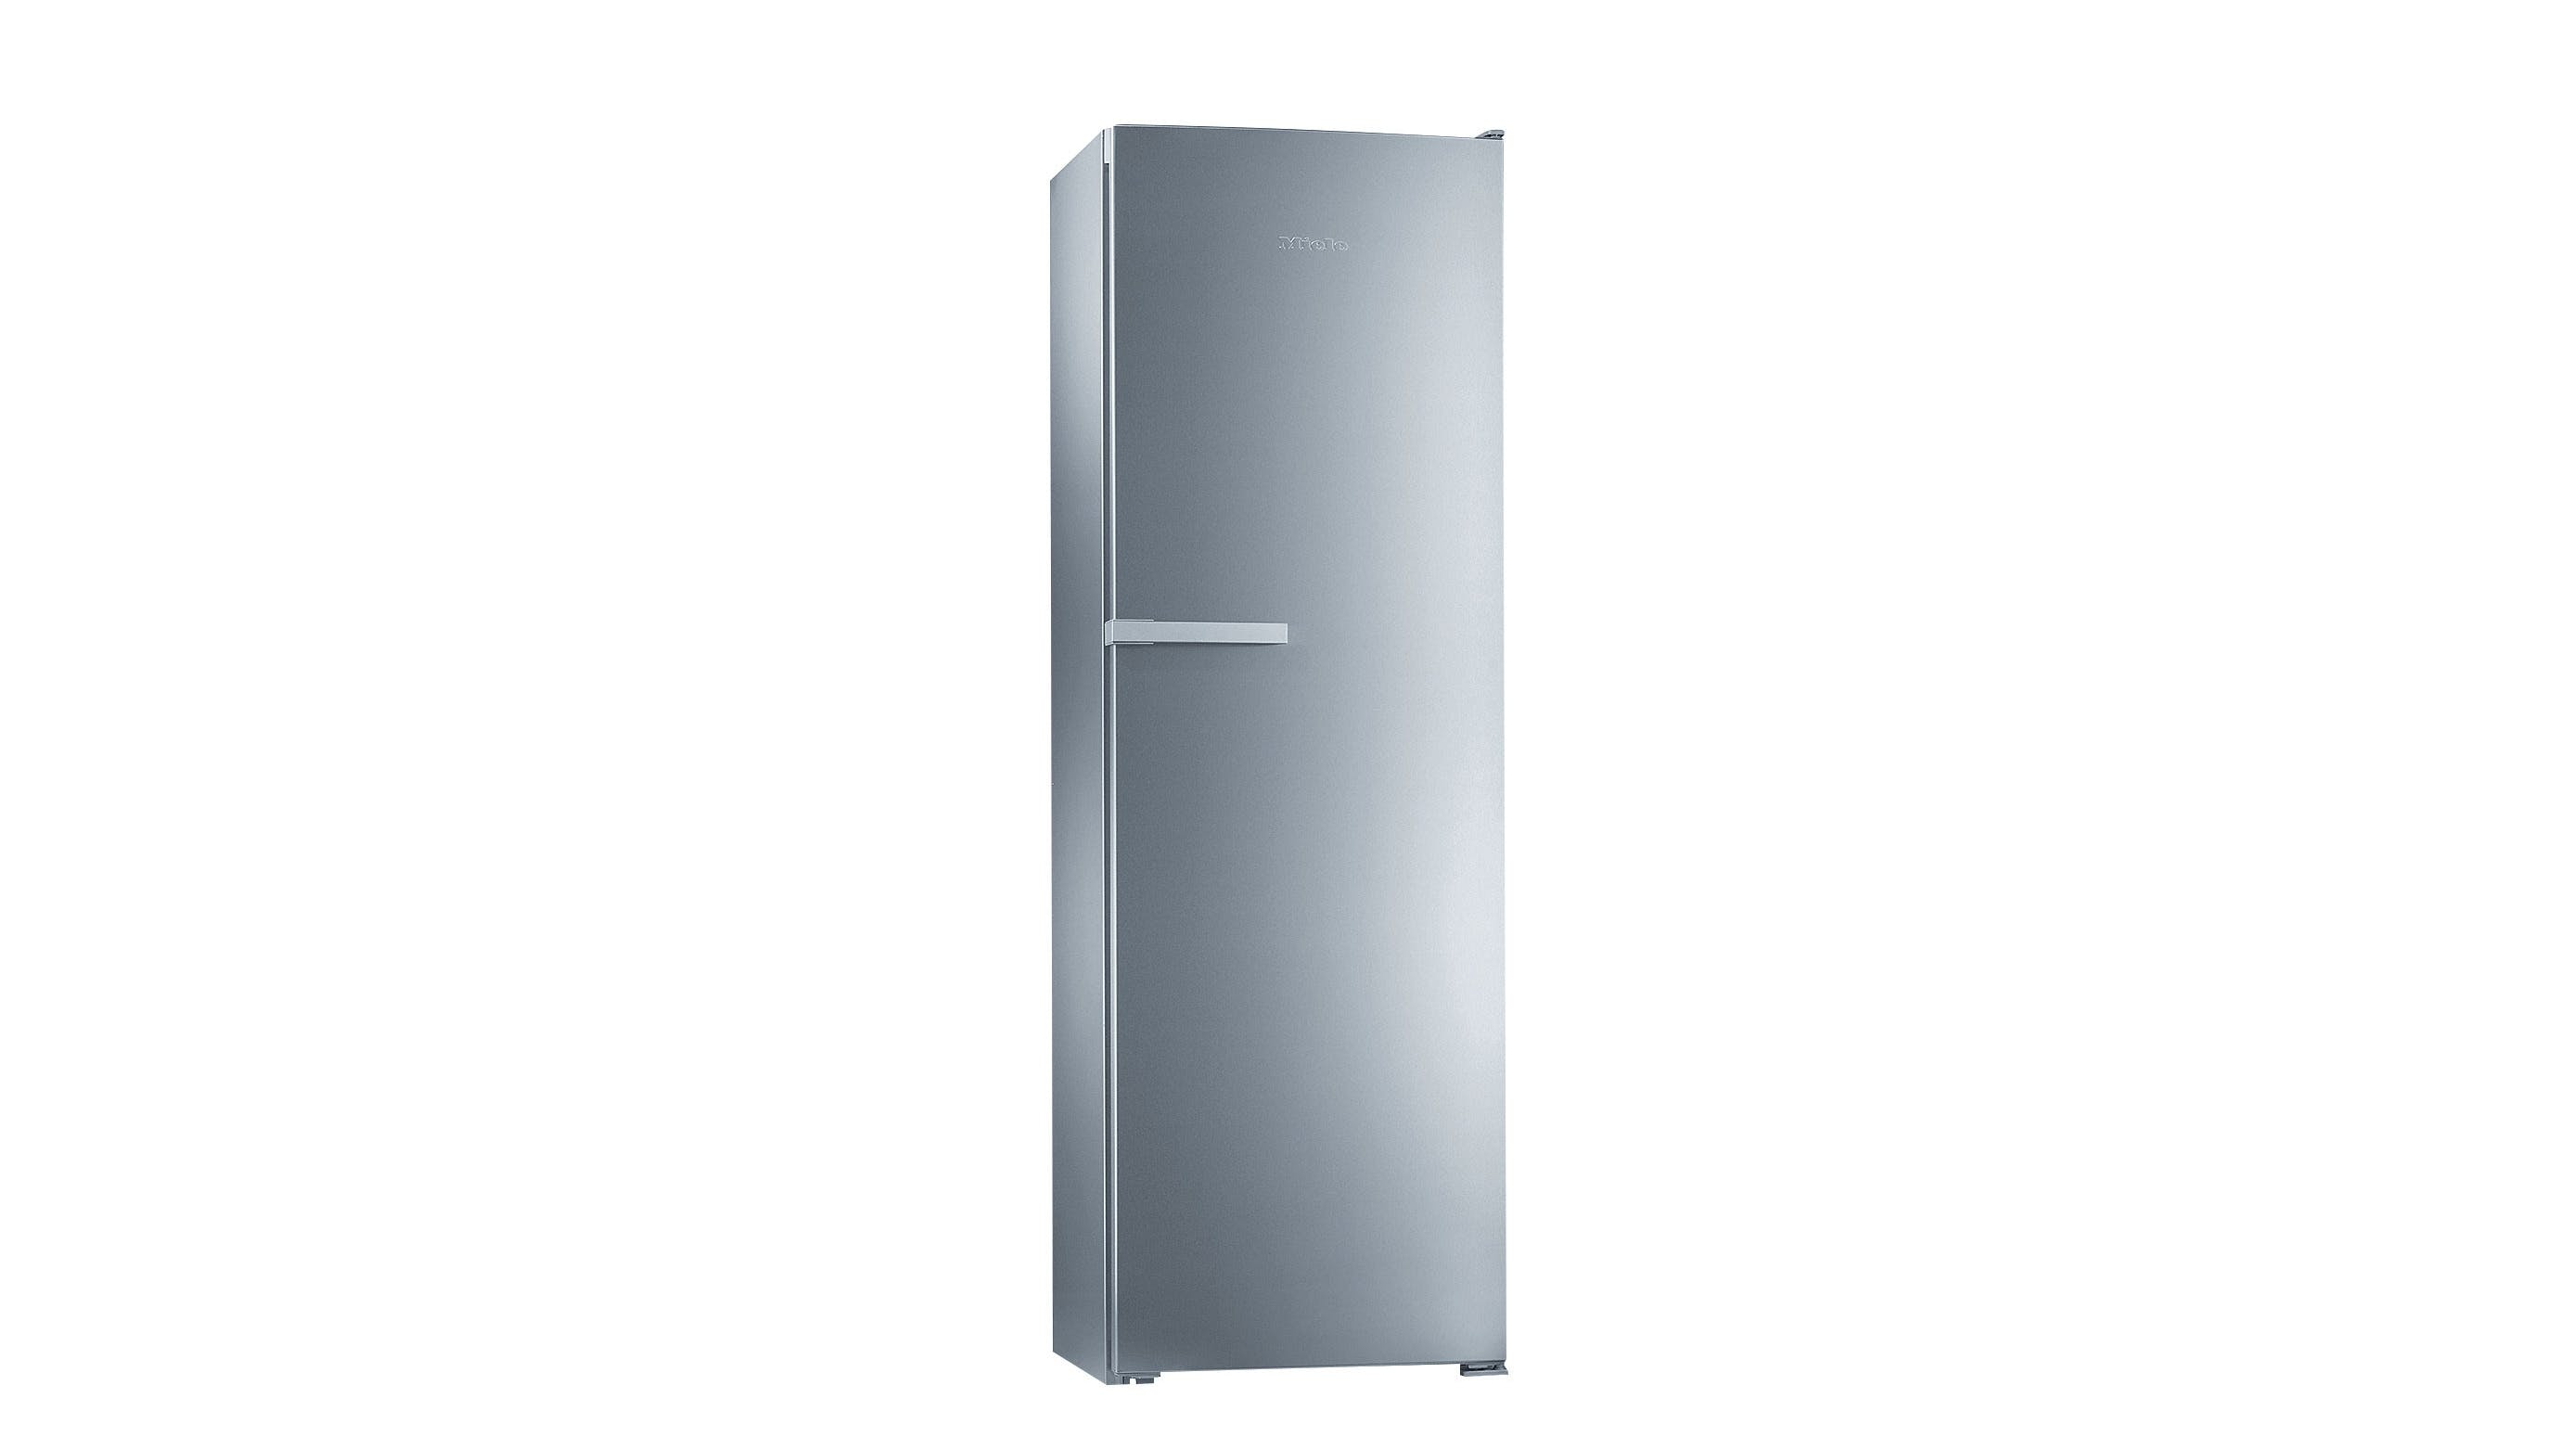 miele 405l side by side fridge cleansteel domayne. Black Bedroom Furniture Sets. Home Design Ideas